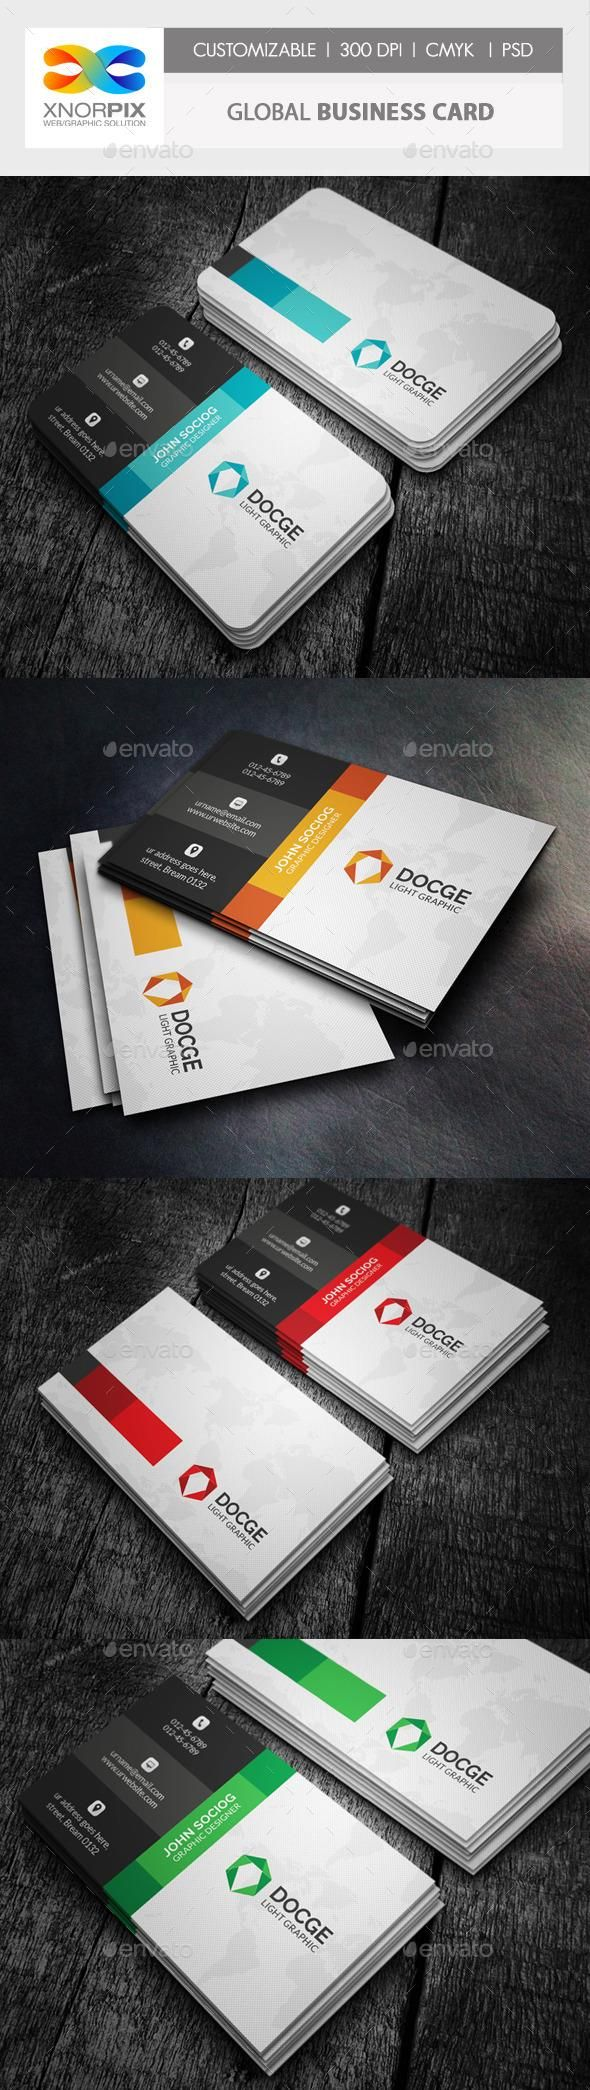 Best 25 global business ideas on pinterest agile project global business card magicingreecefo Images